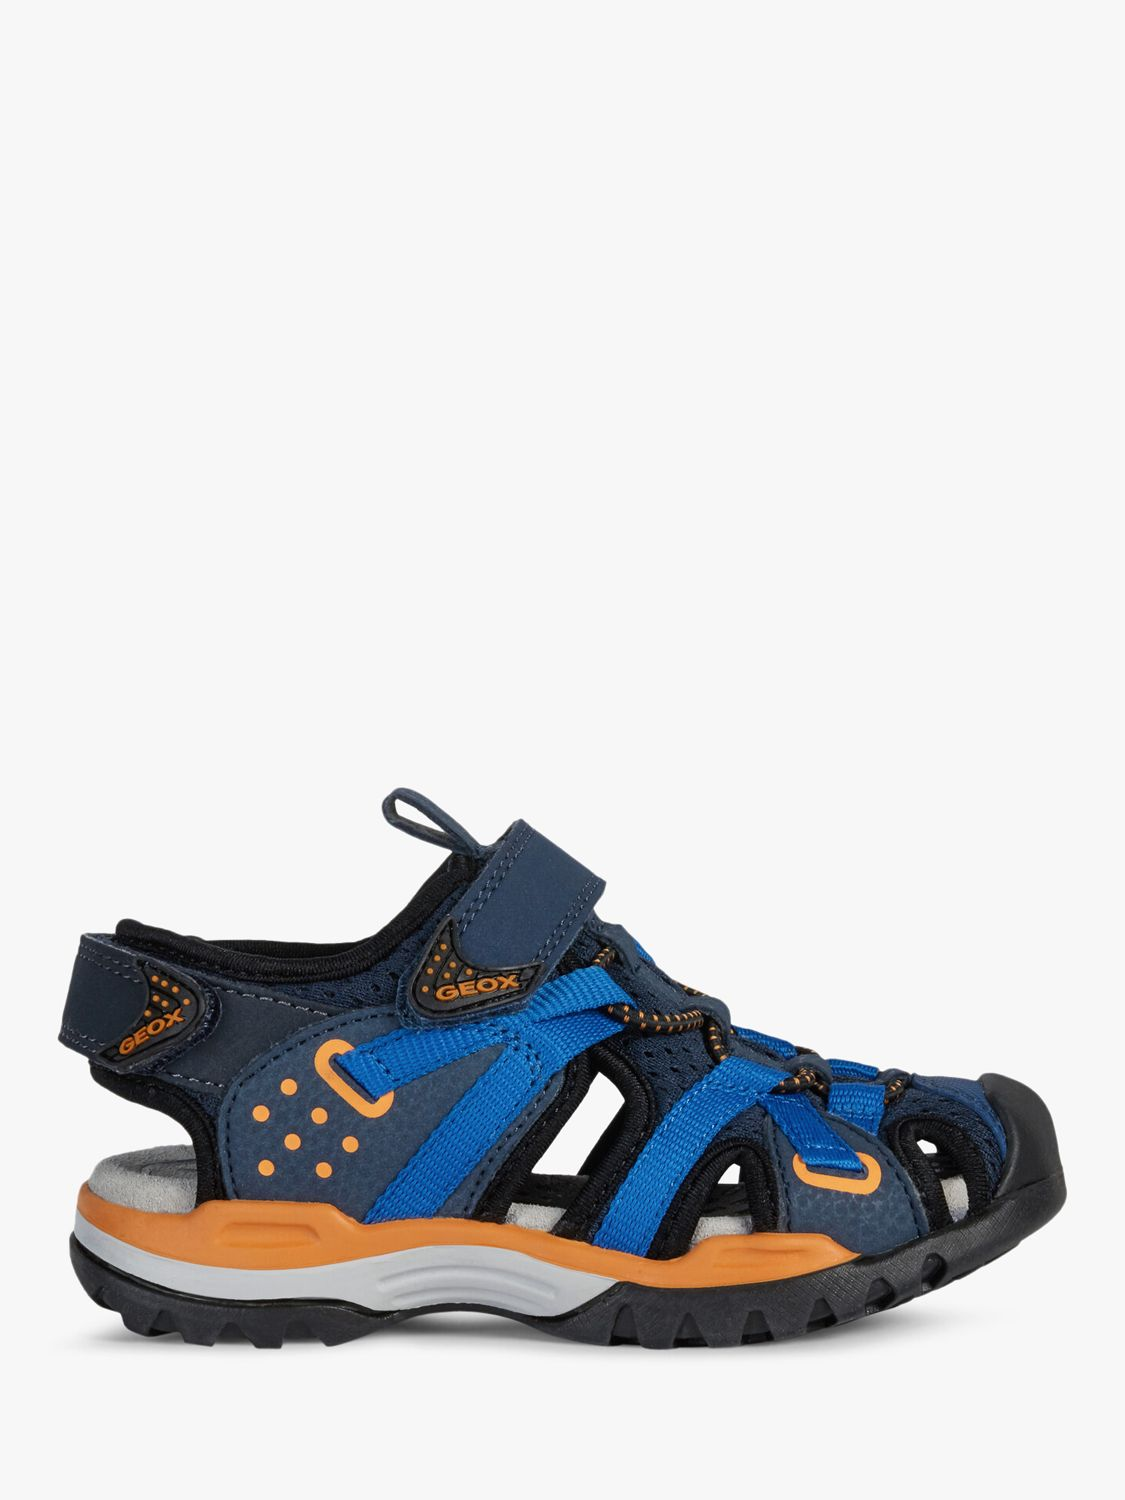 Geox Geox Children's Borealis Riptape Sandals, Navy/Orange